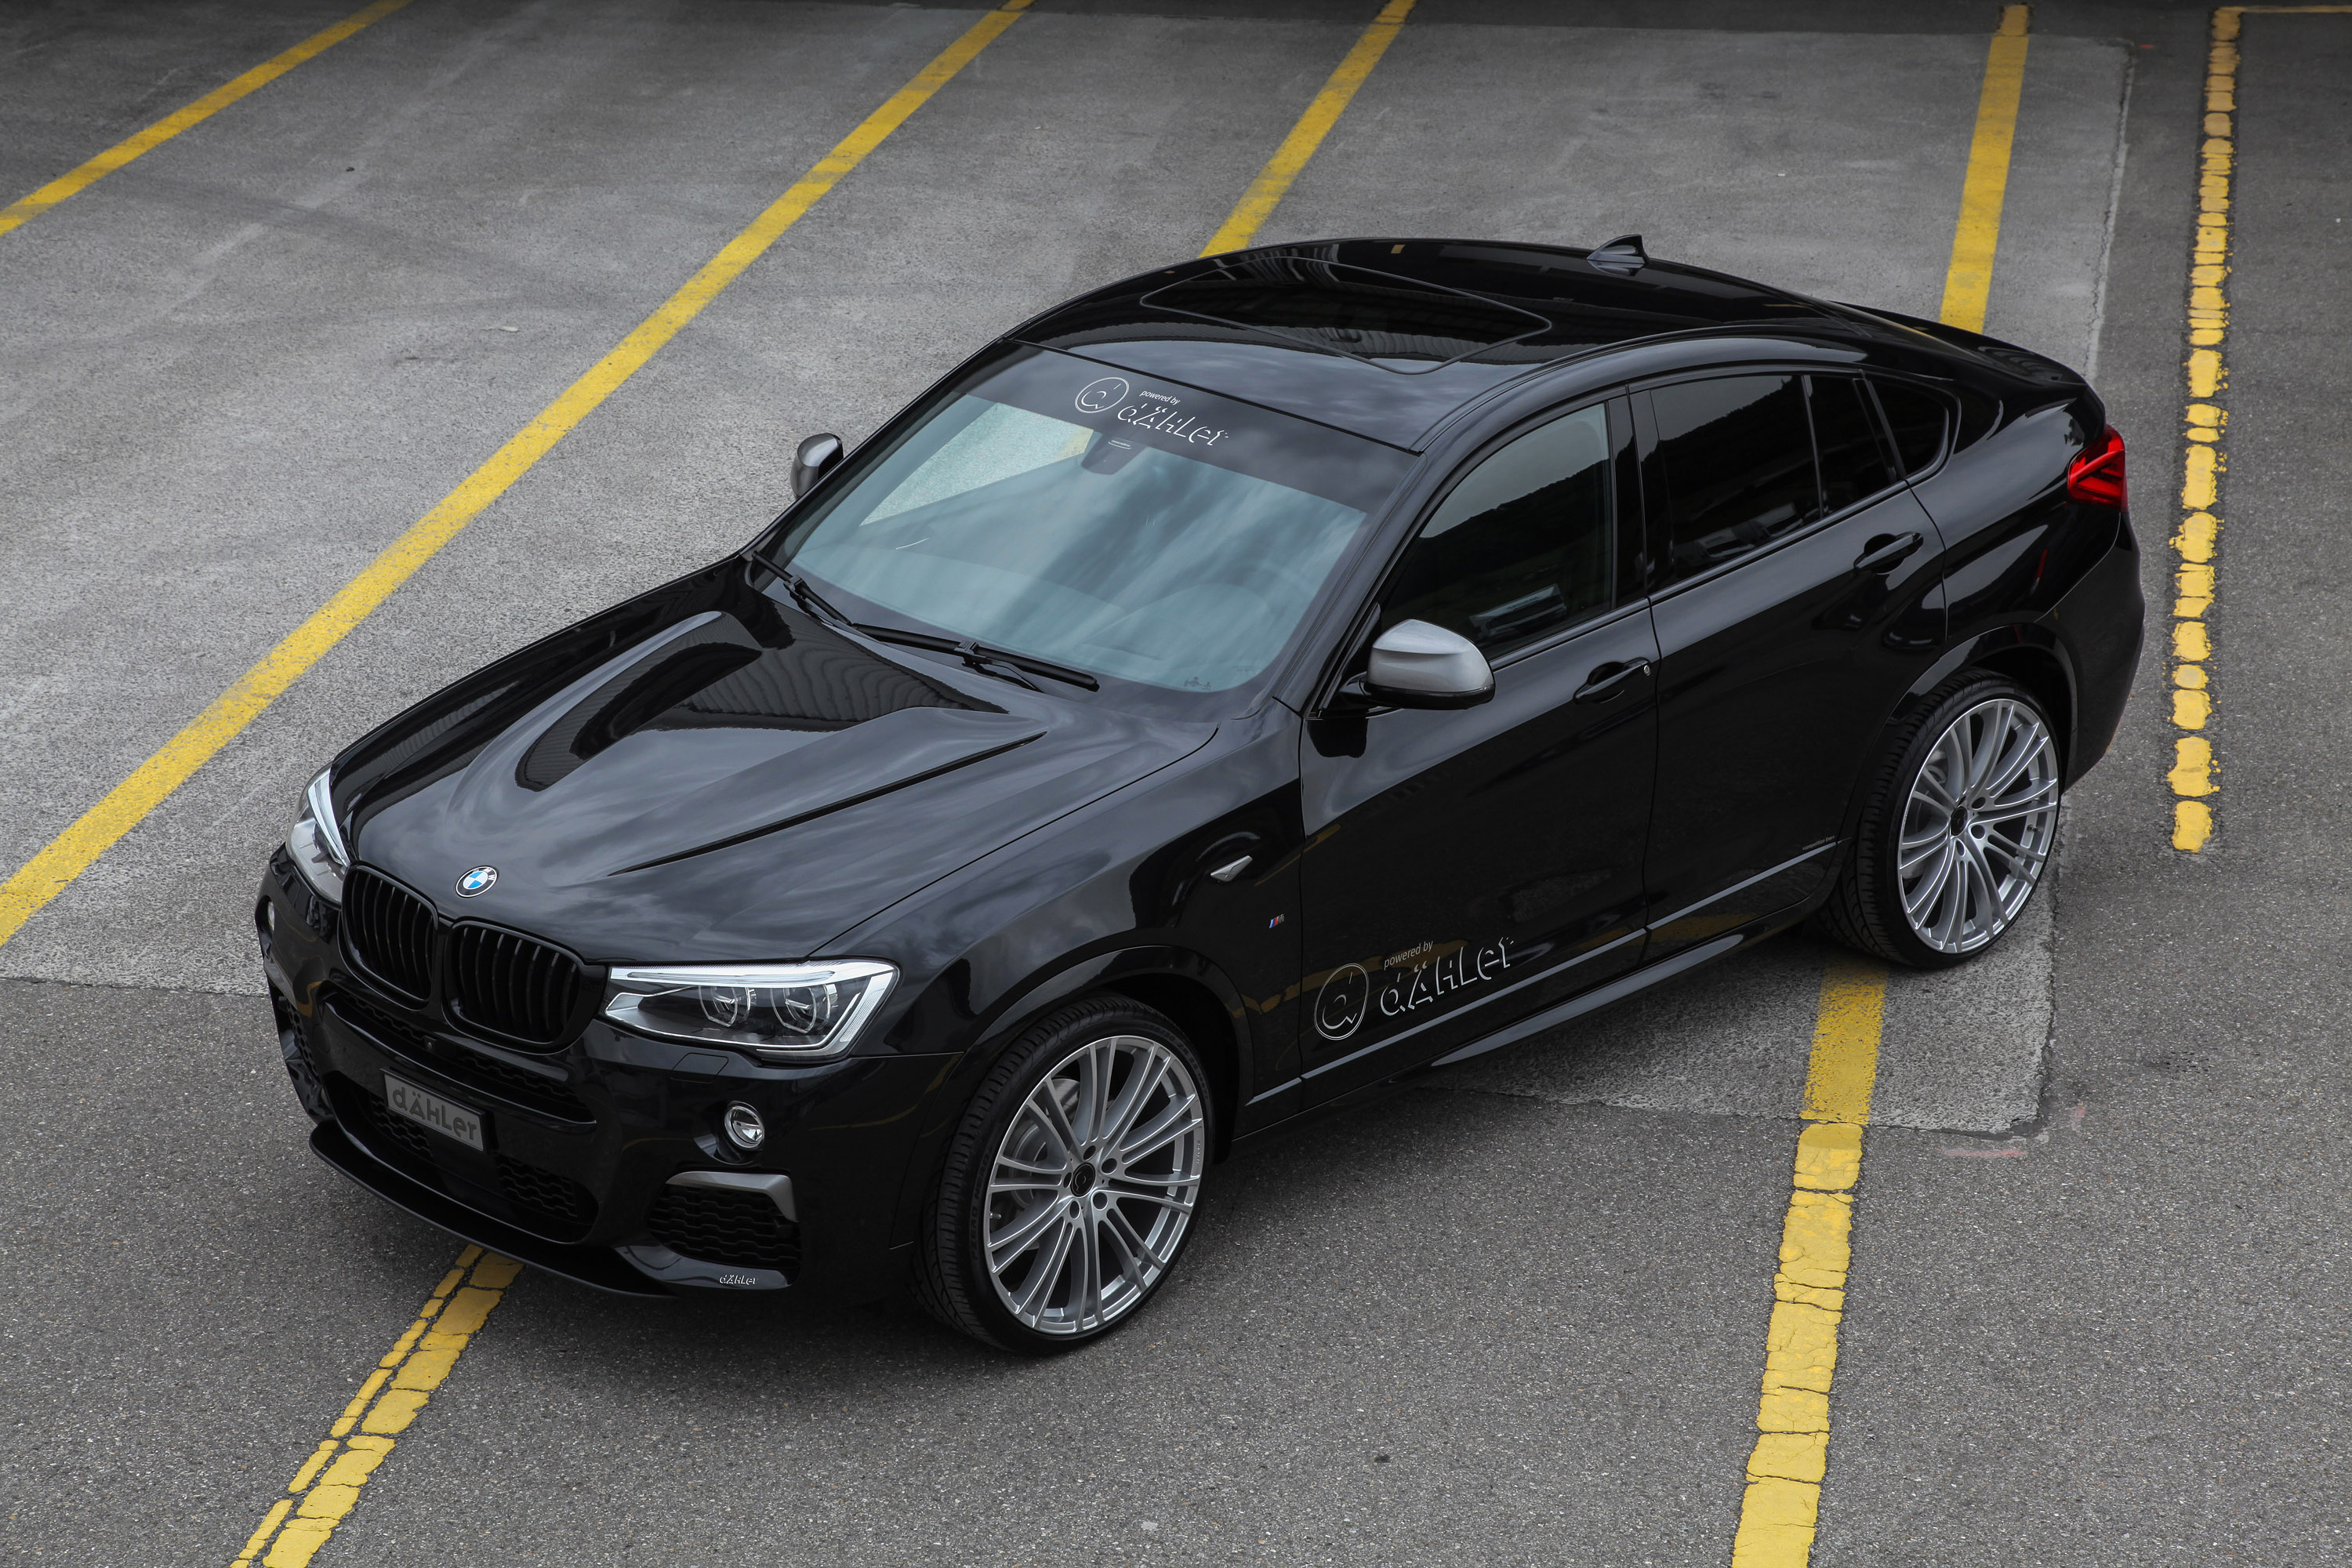 d hler tunes bmw x4 m40i. Black Bedroom Furniture Sets. Home Design Ideas